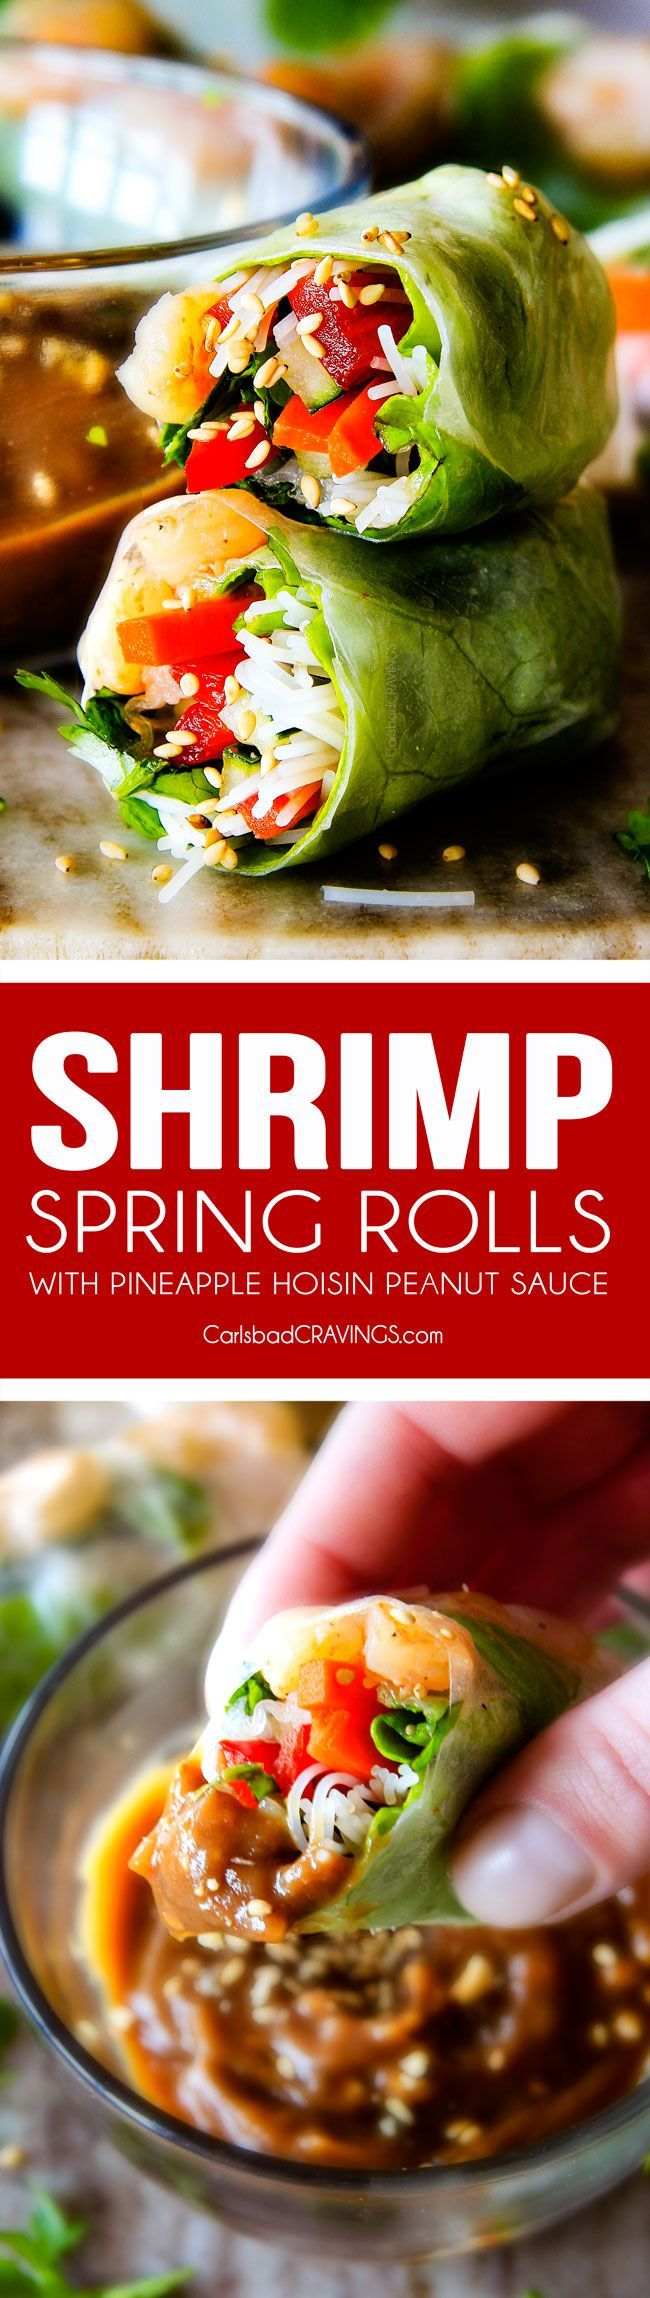 These insanely delicious Fresh Shrimp Spring Rolls are a flavor and texture explosion in every addictive bite and super easy to make with all my tips and tricks and step by step photos! and the the Pineapple Hoisin Peanut Sauce is EVERYTHING!